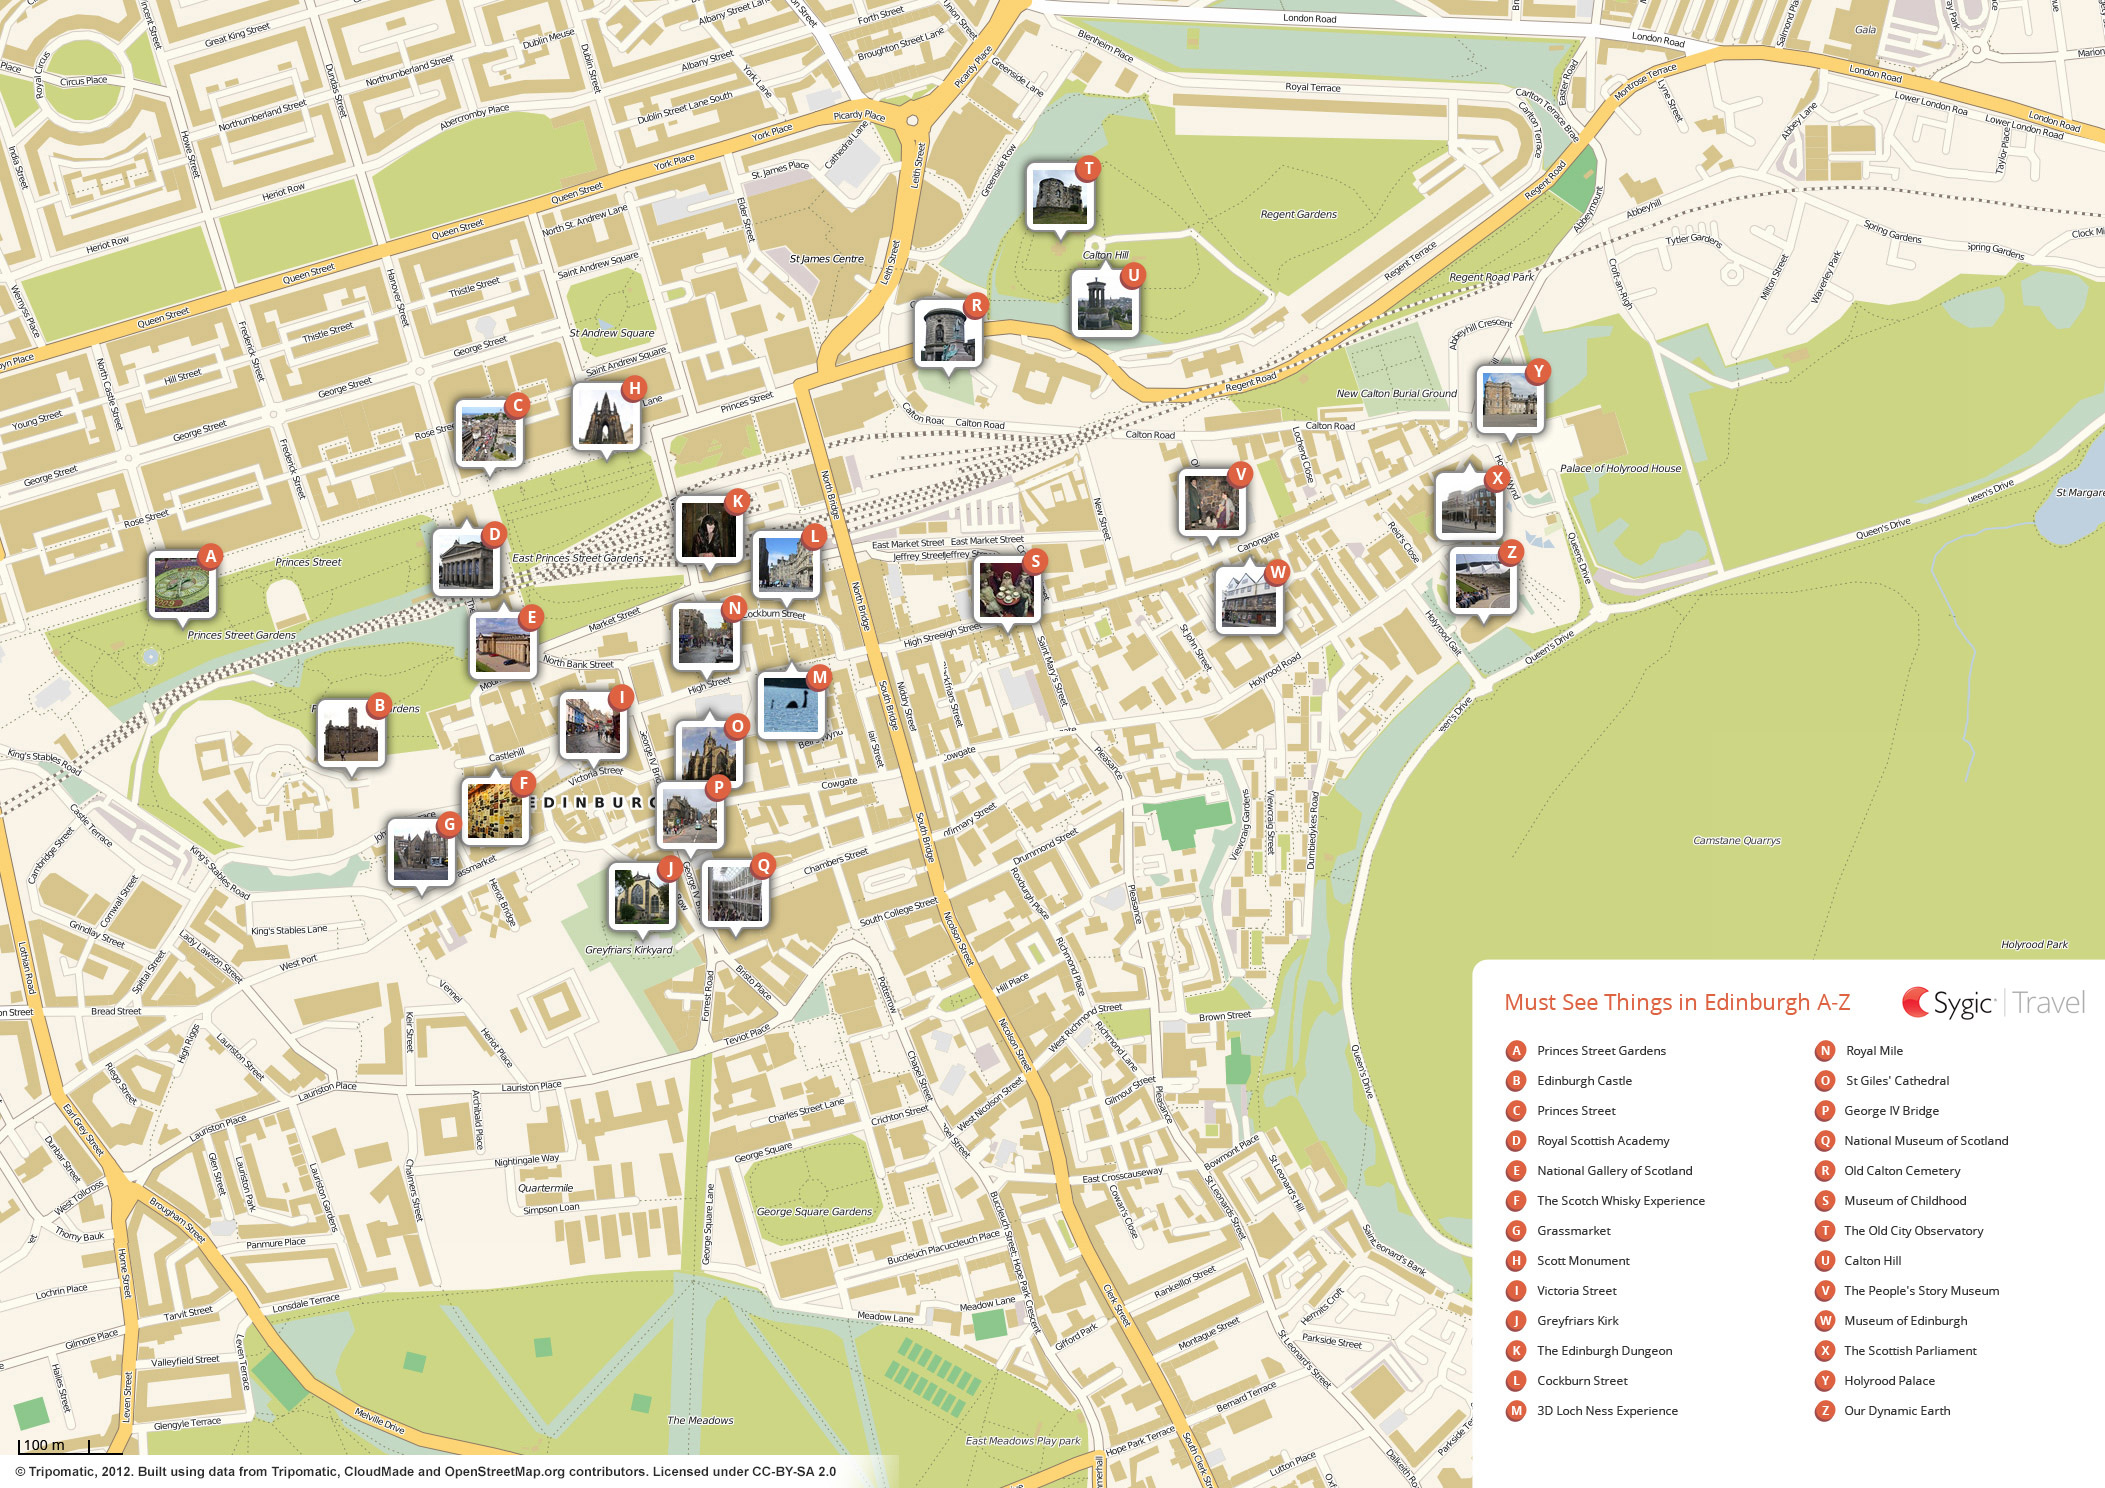 Edinburgh Printable Tourist Map – Edinburgh Tourist Map